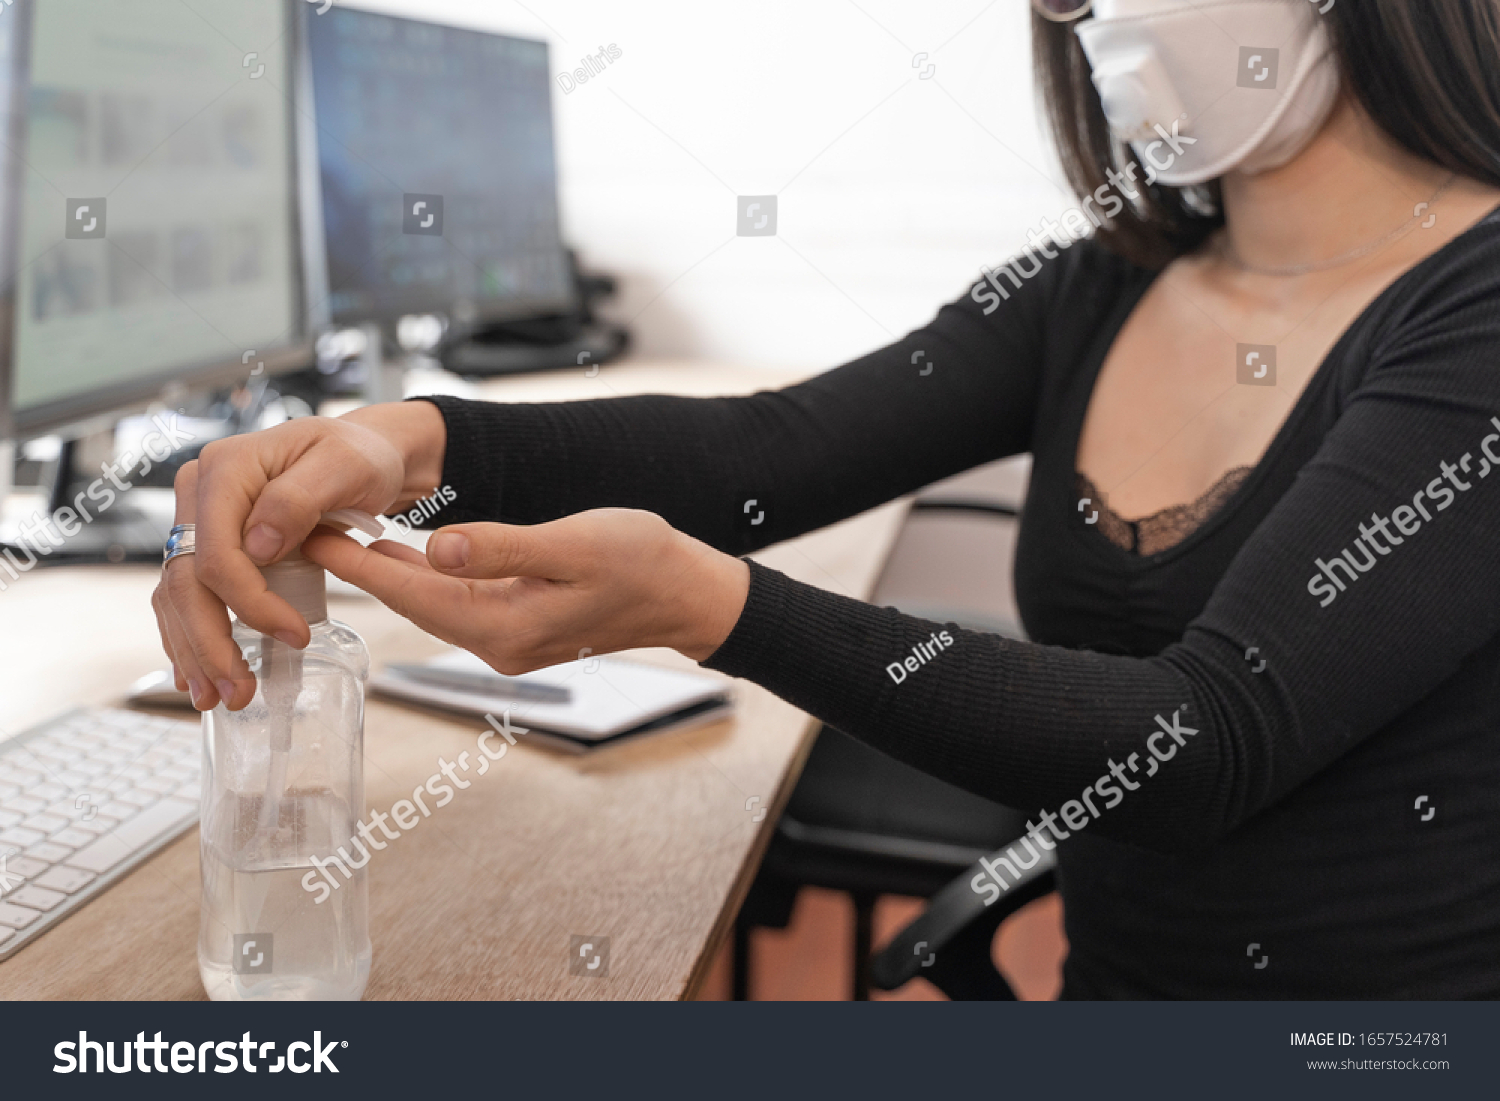 Coronavirus. Woman cleaning her hands at the office. Sick with mask for corona virus. Workplace desk with computer. Woman spraying alcohol gel or antibacterial soap sanitizer. #1657524781